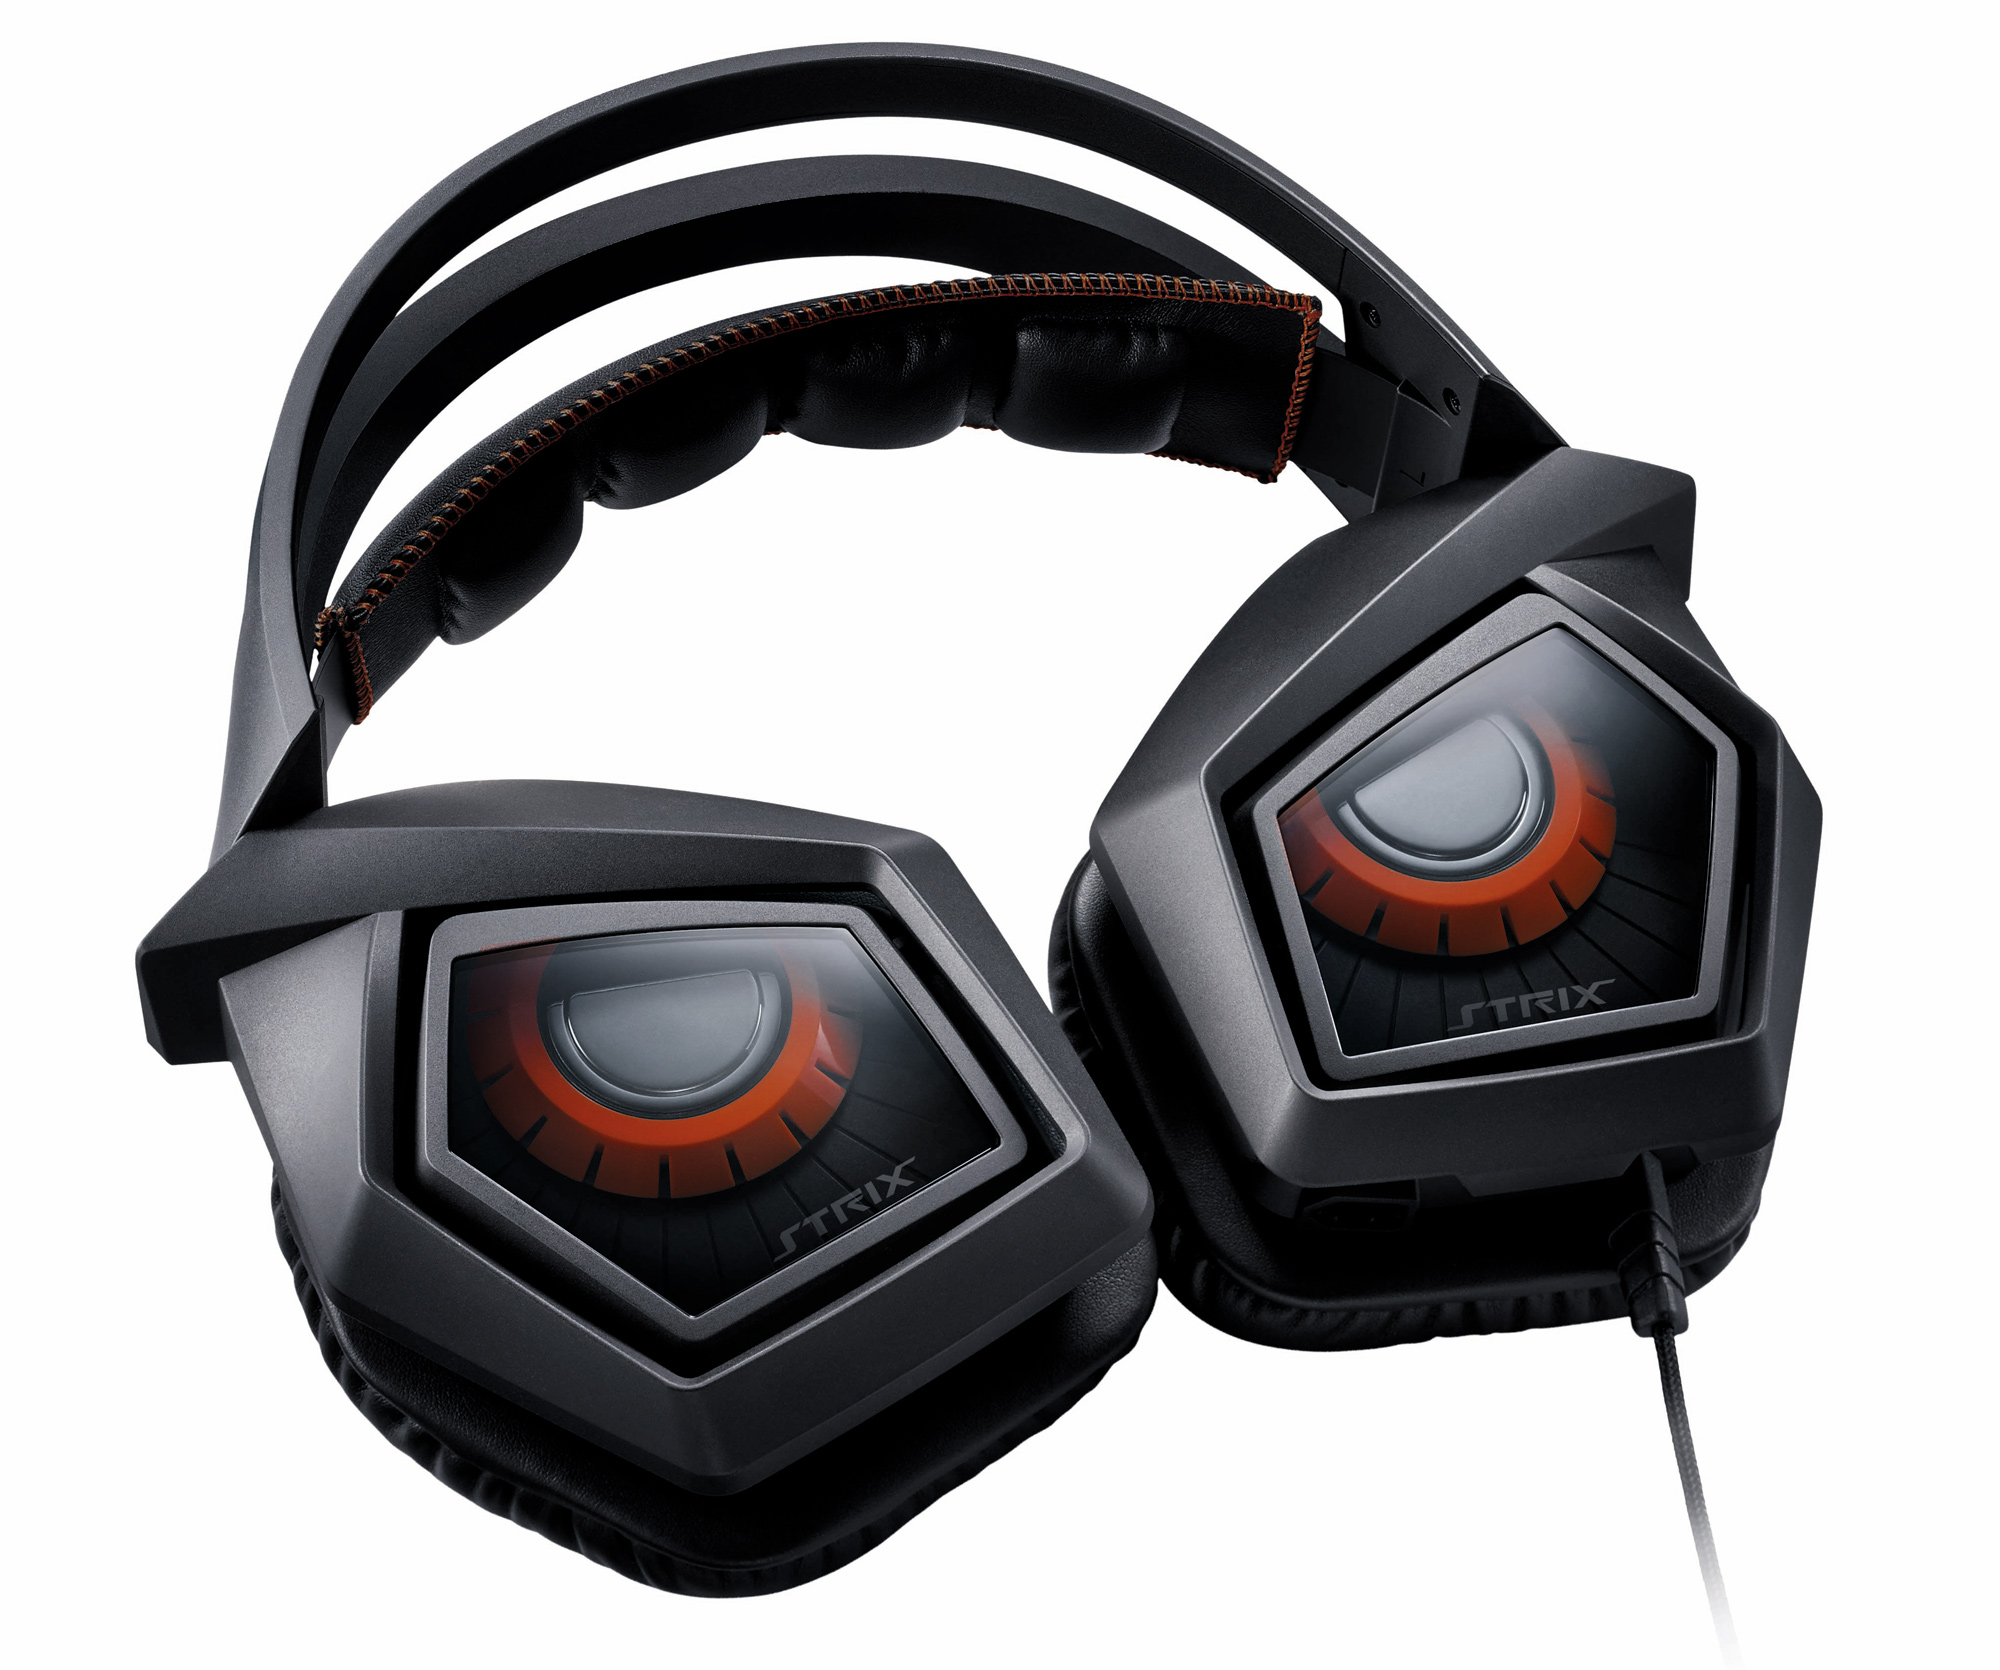 ASUS Announces Strix Pro Gaming Headset | Play3r